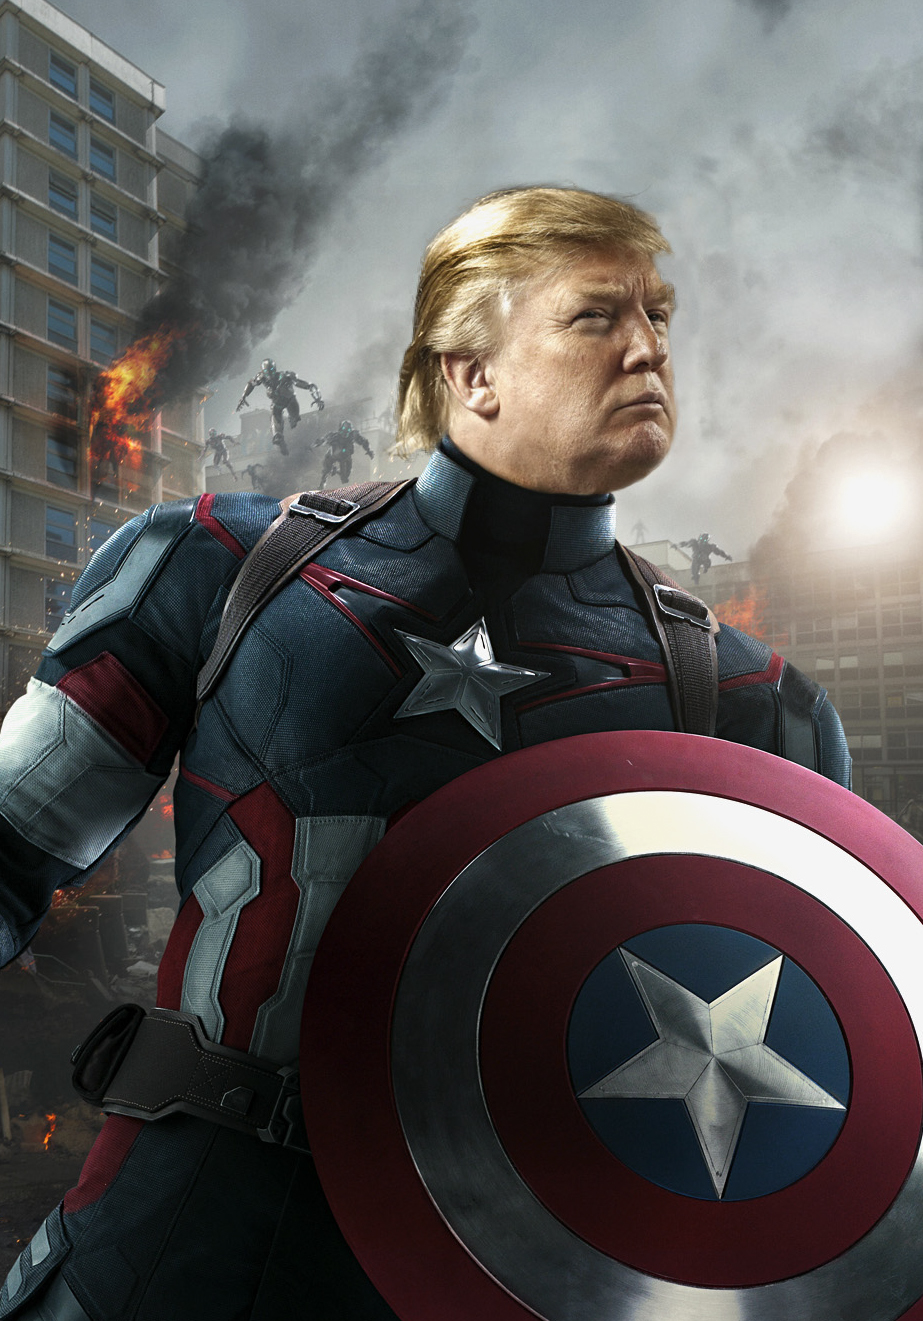 Captain America battles the United Nations in Marvel film ...